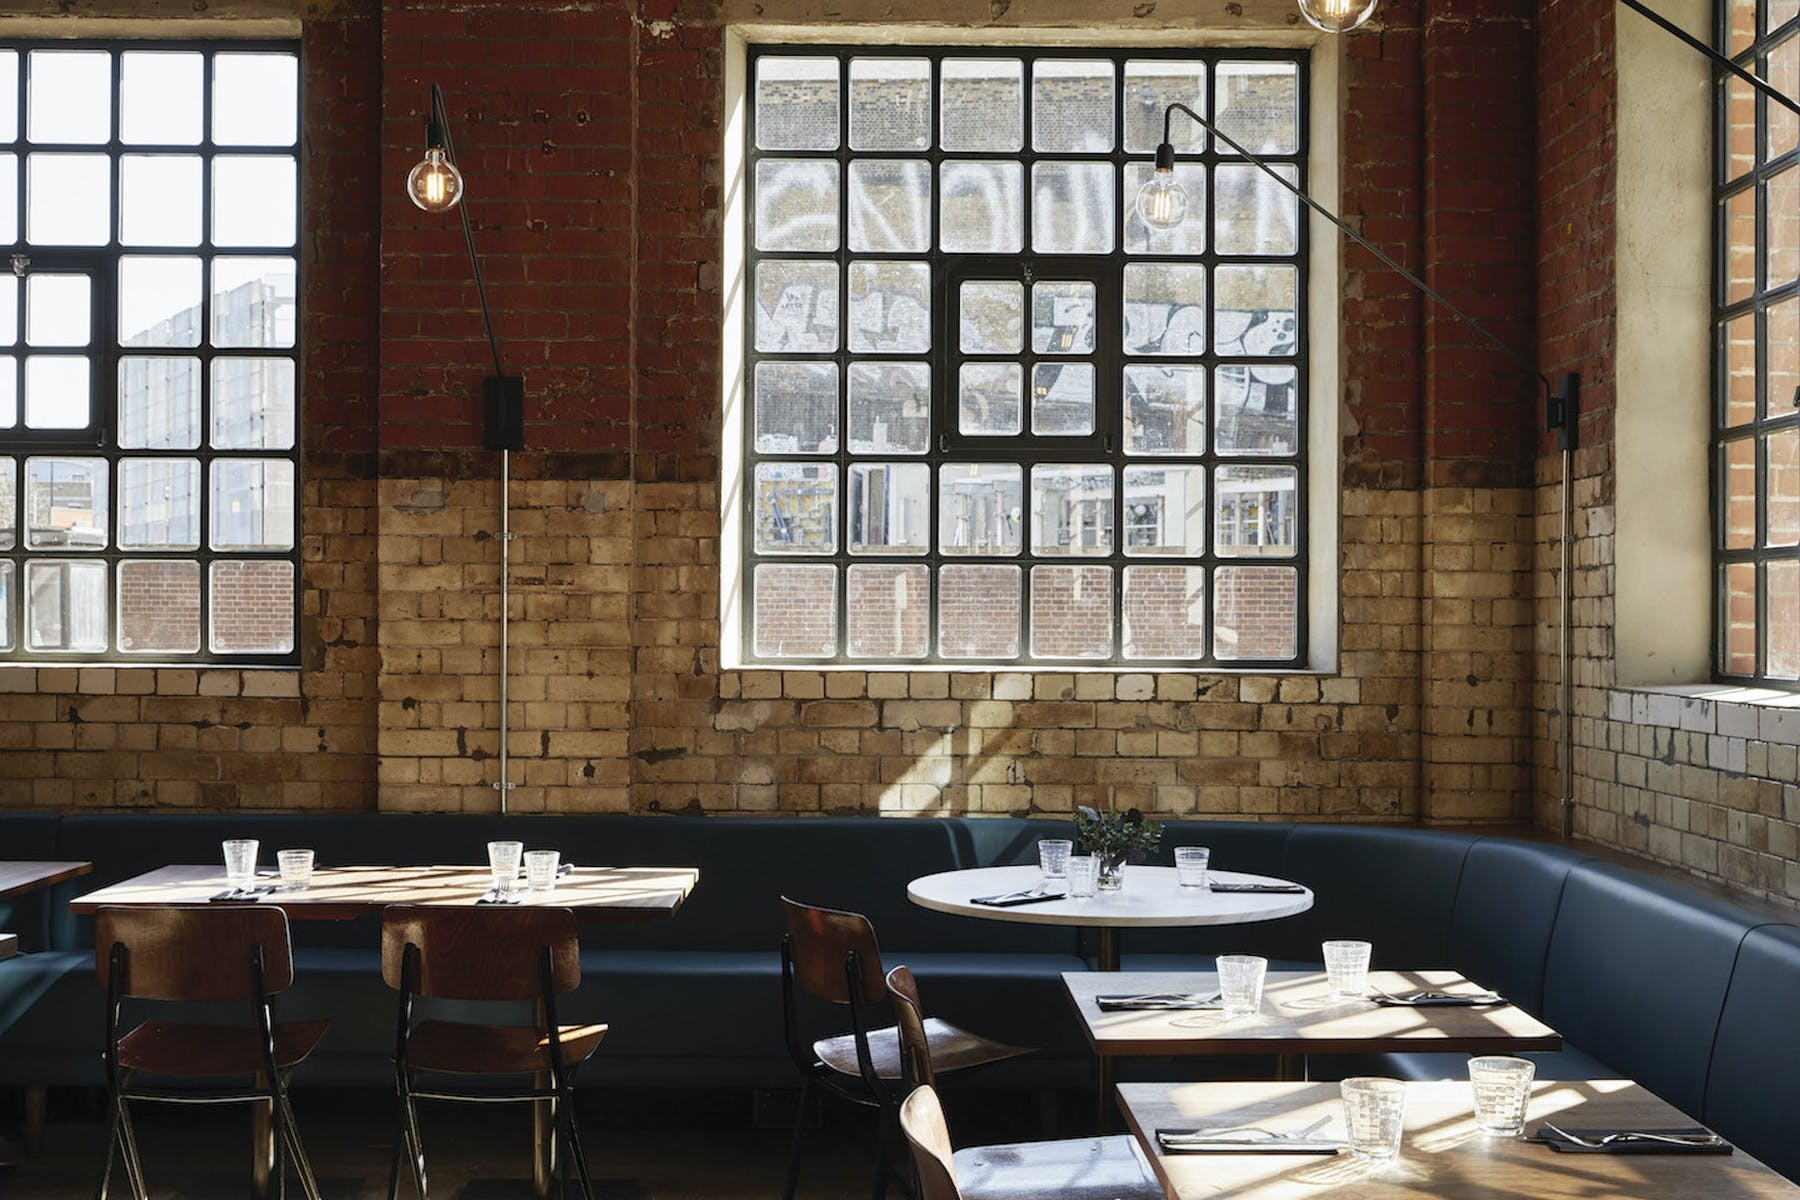 The 10 Hottest Dinner Spots In London Right Now - London - The Infatuation